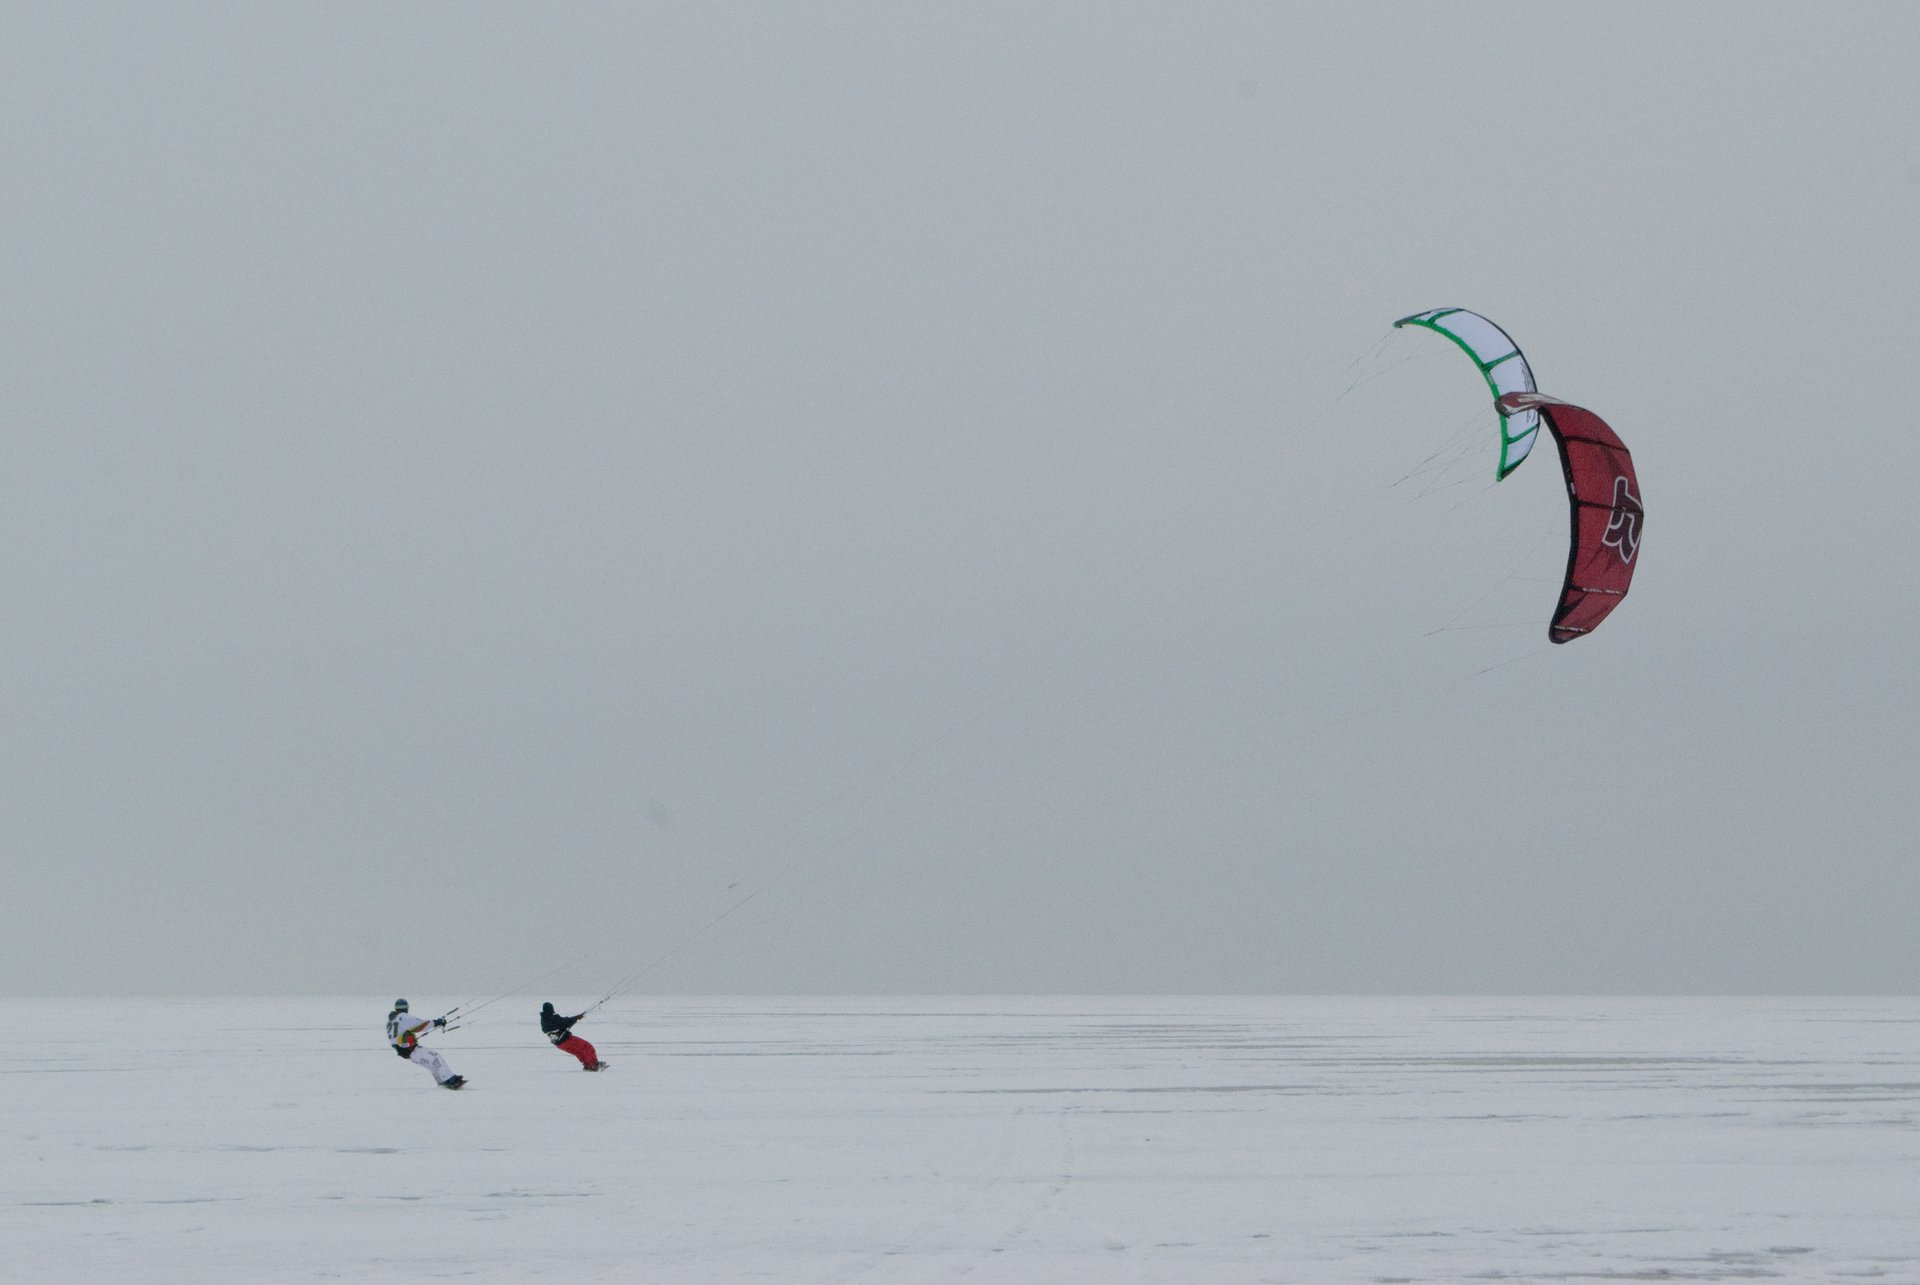 Best time to see Snow Kiting in Norway 2020